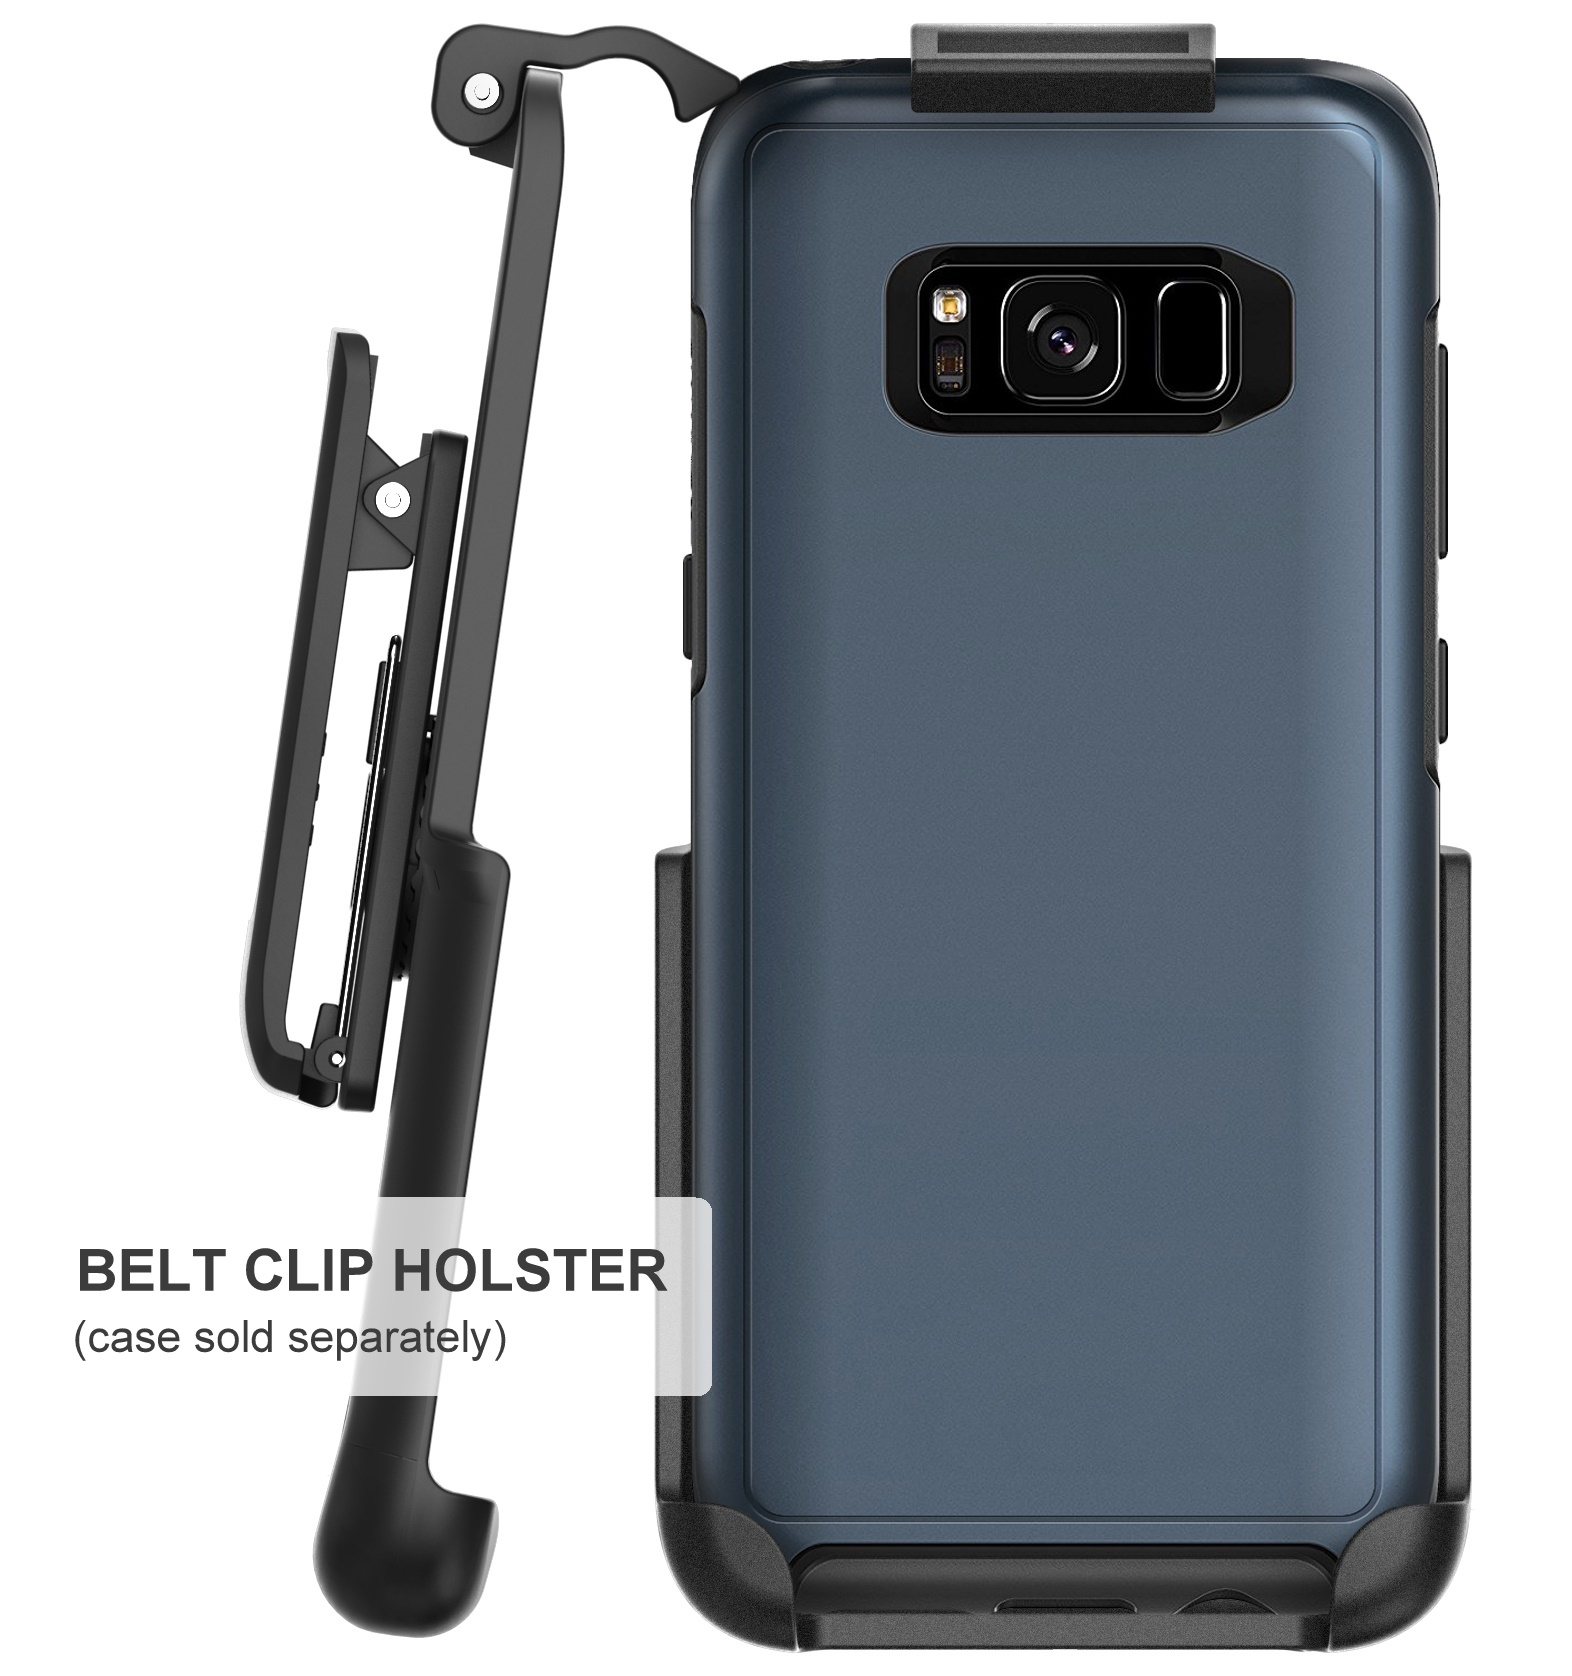 Belt Clip Holster for OtterBox Symmetry Case - (By Encased) (case not included)